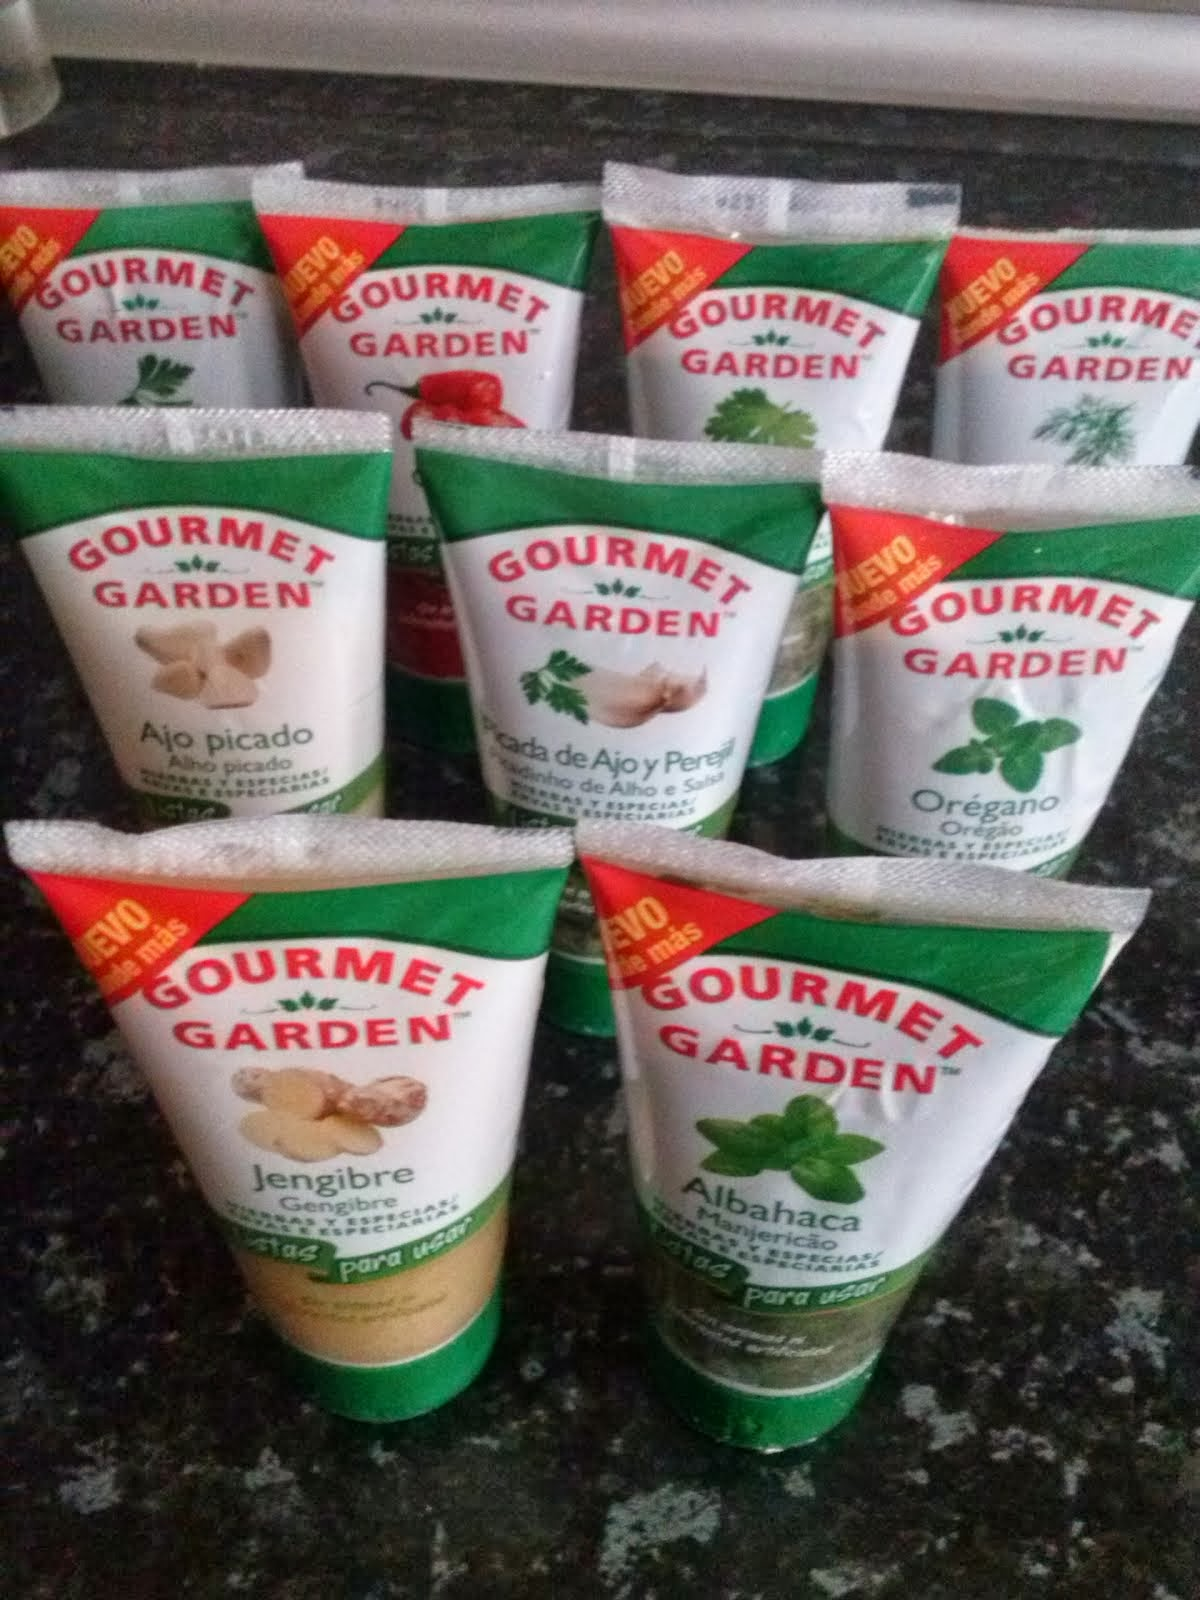 GOURMET GARDEN